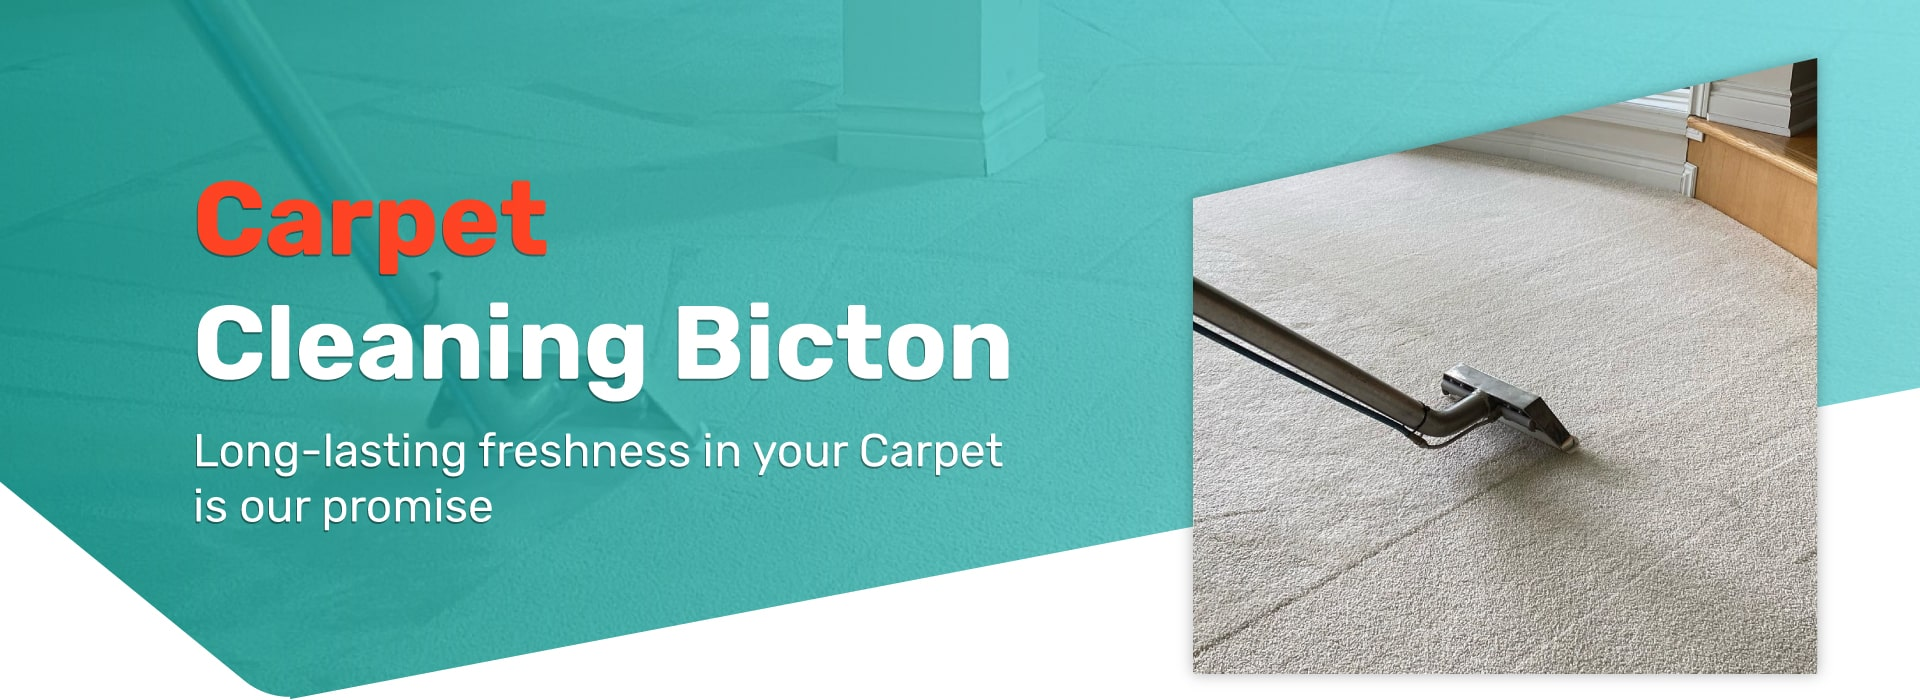 Carpet-Cleaning-Service-In-Bicton